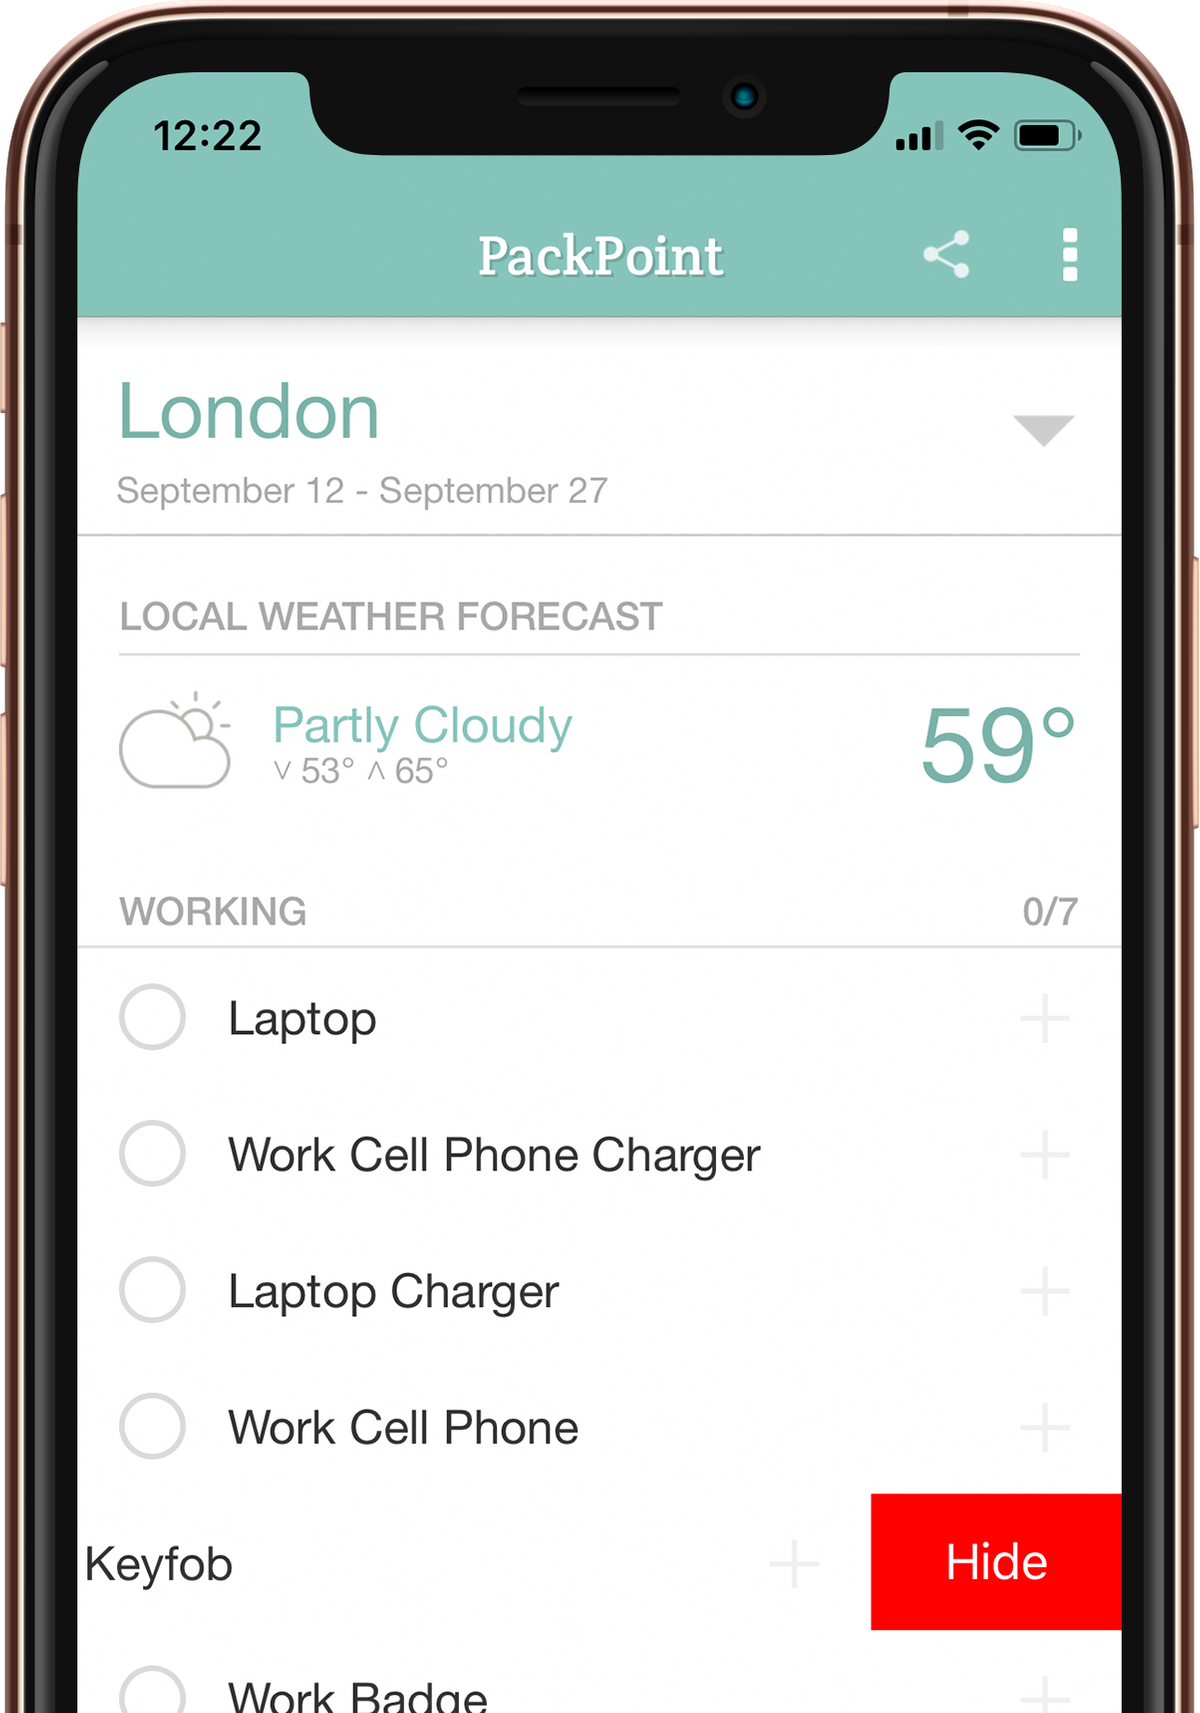 PackPoint travel packing list app